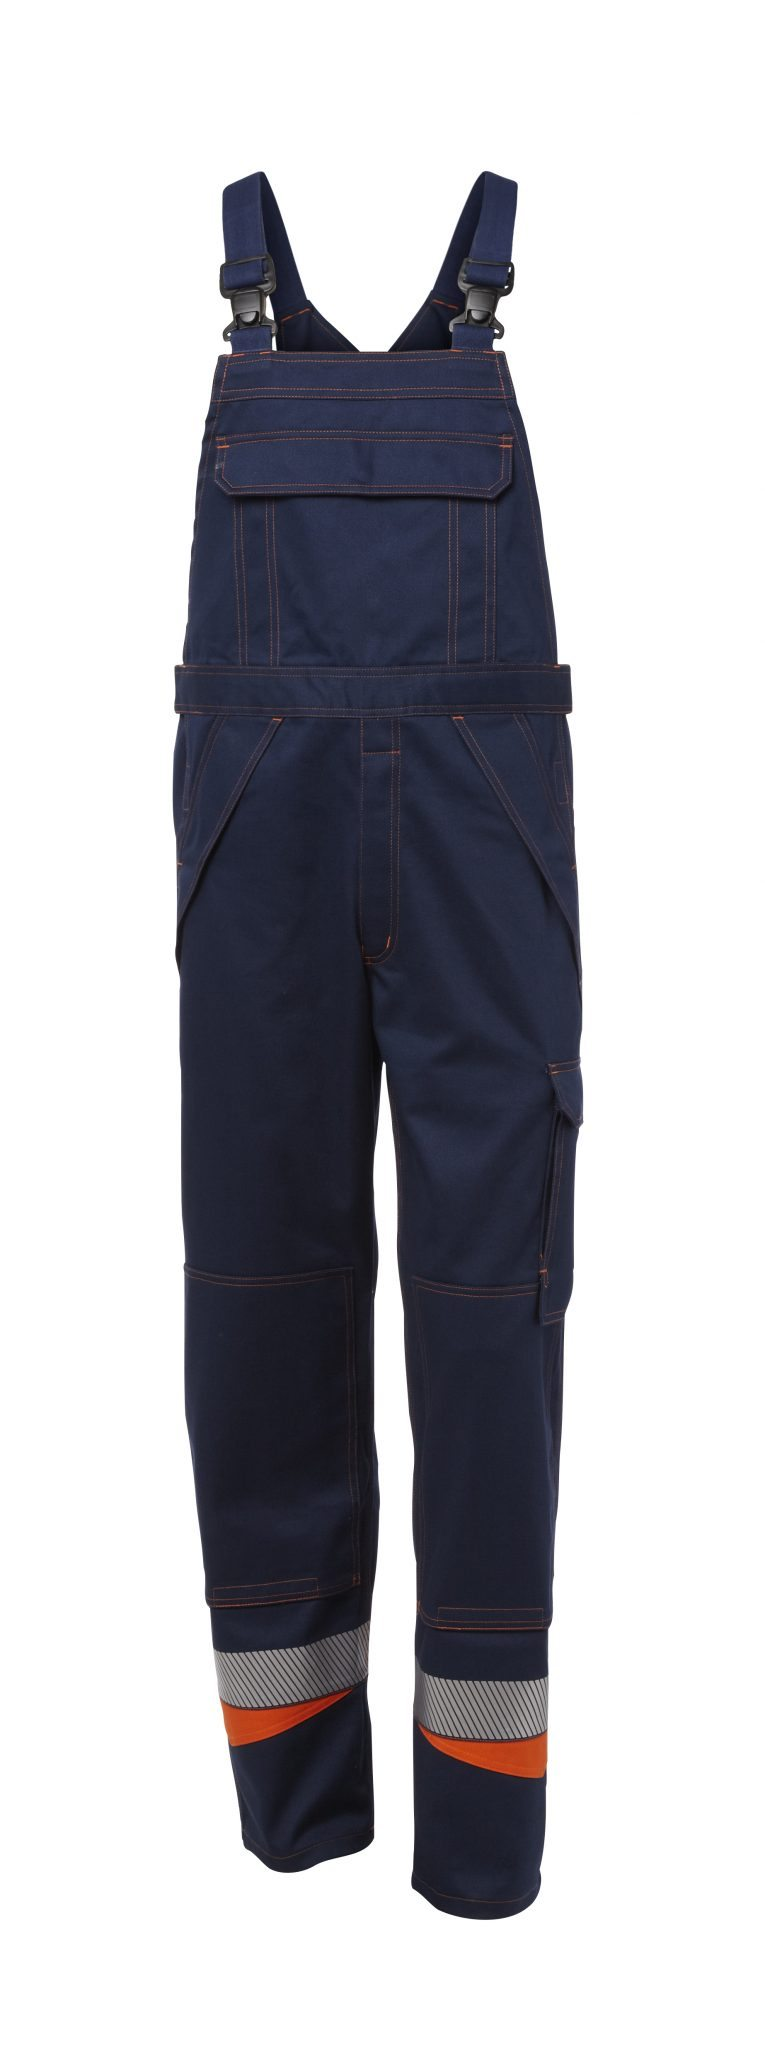 Bib trousers Multi Hazard Textile